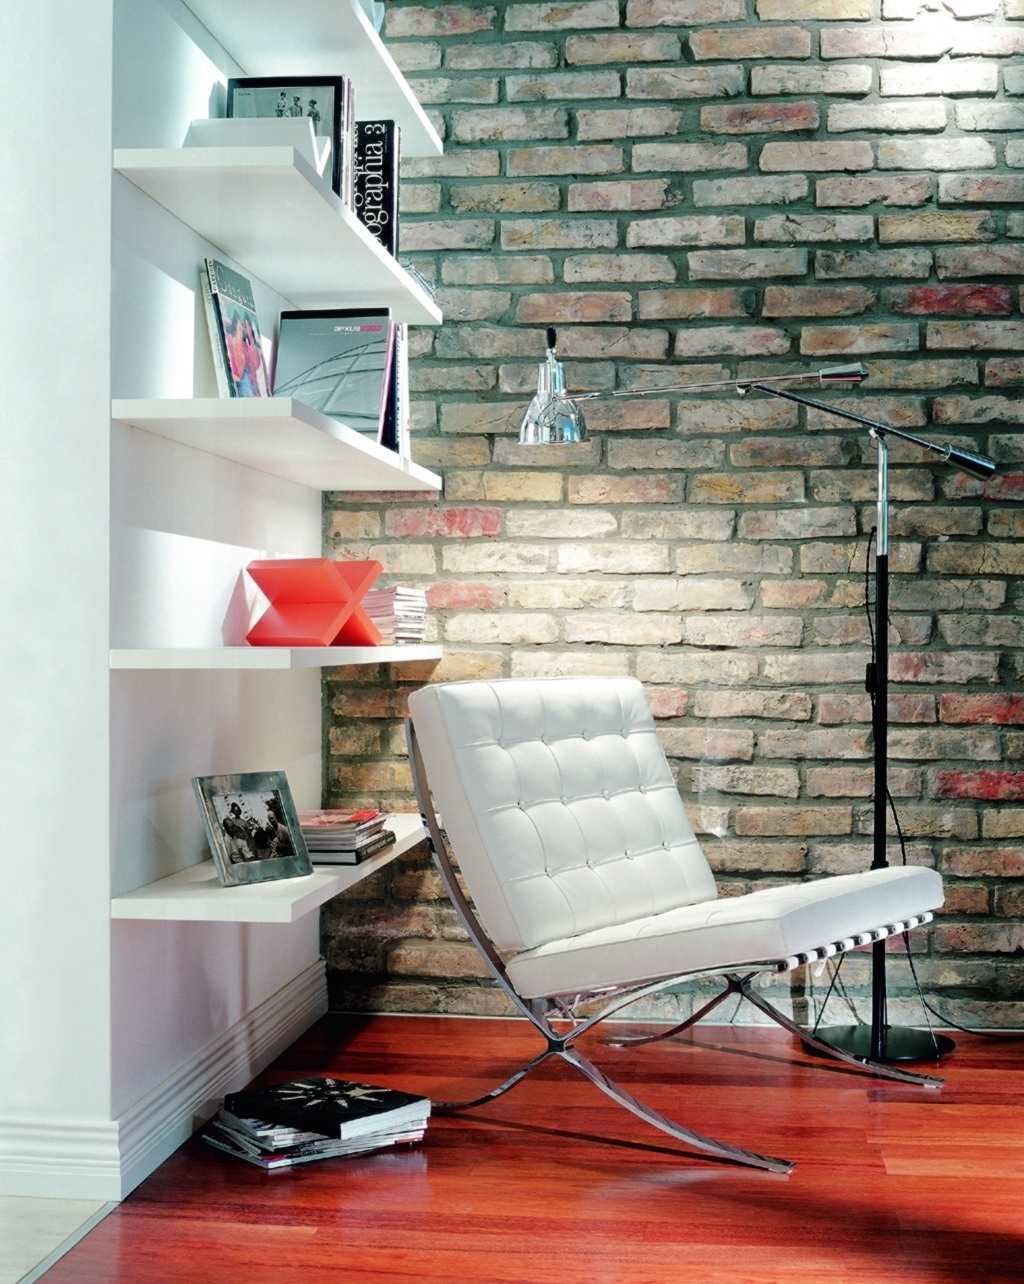 Unique and modern chair design apartments i like blog for New designs of furniture for home